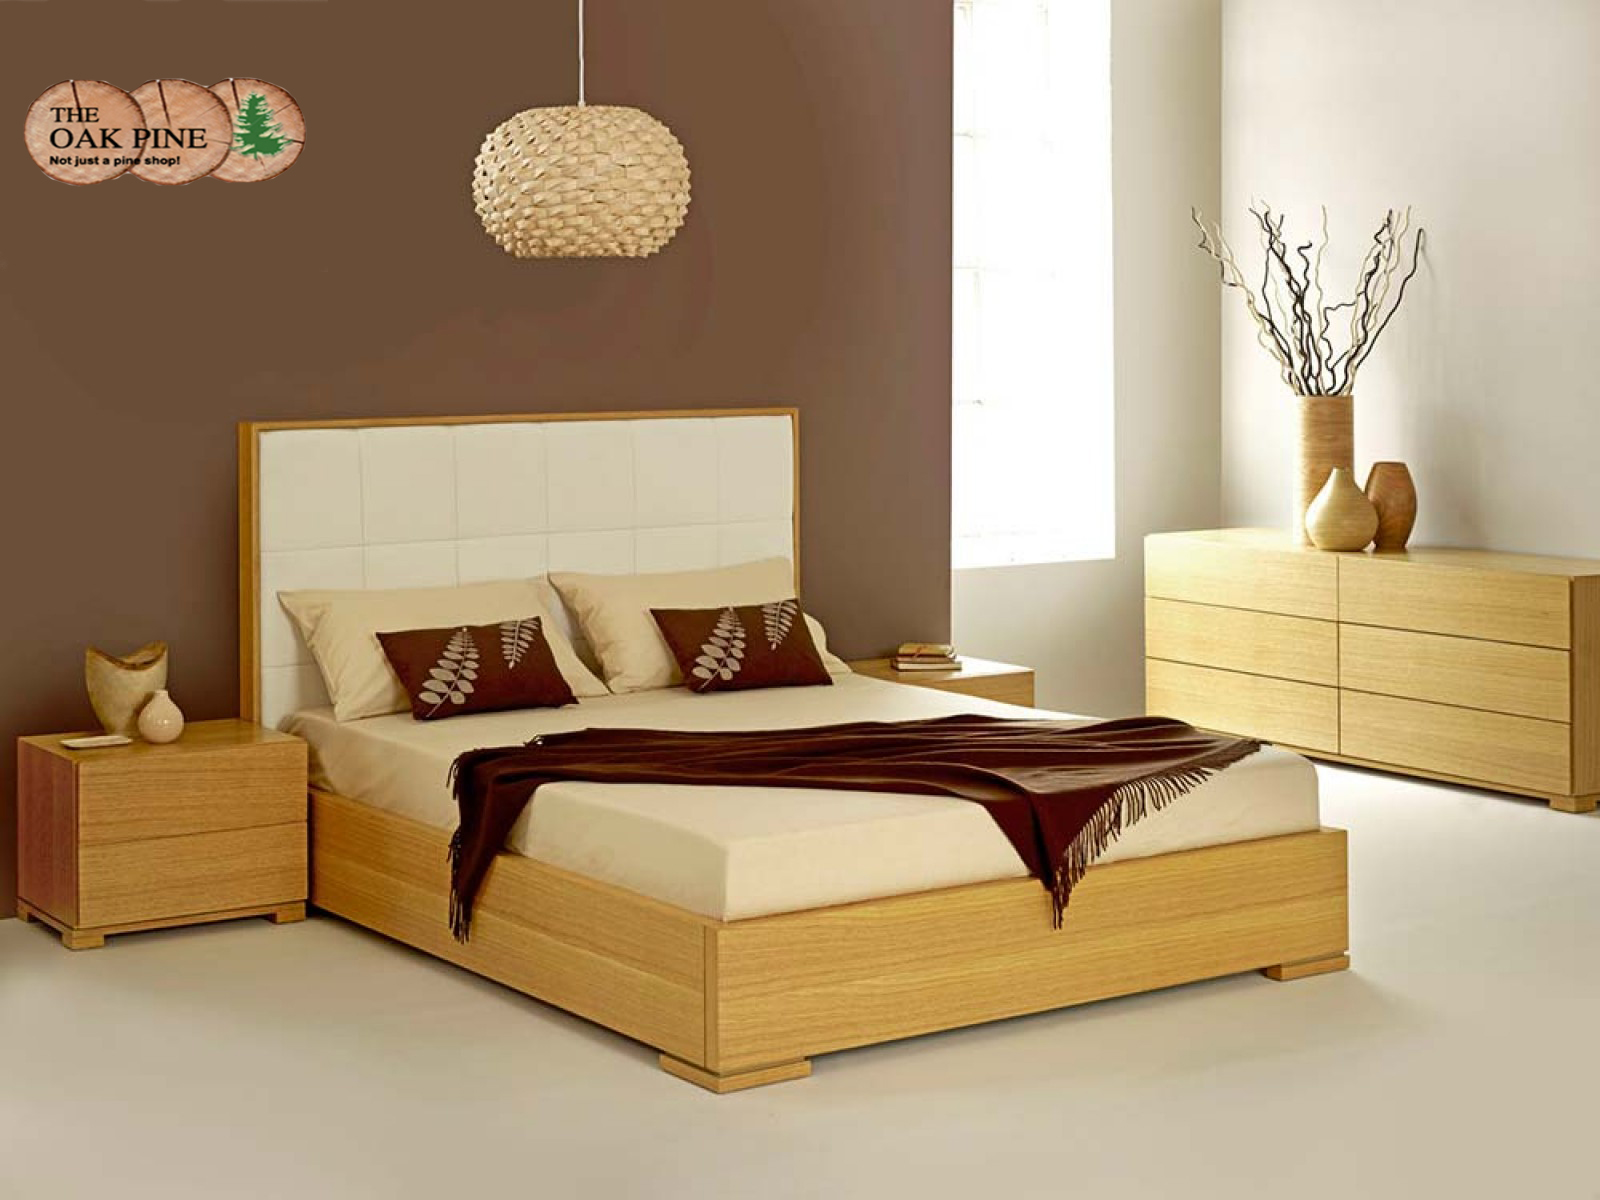 Buy the Furniture for Your Bedroom   Home Furniture and Accessories     Buy the Furniture for Your Bedroom   Home Furniture and Accessories in  Birstall